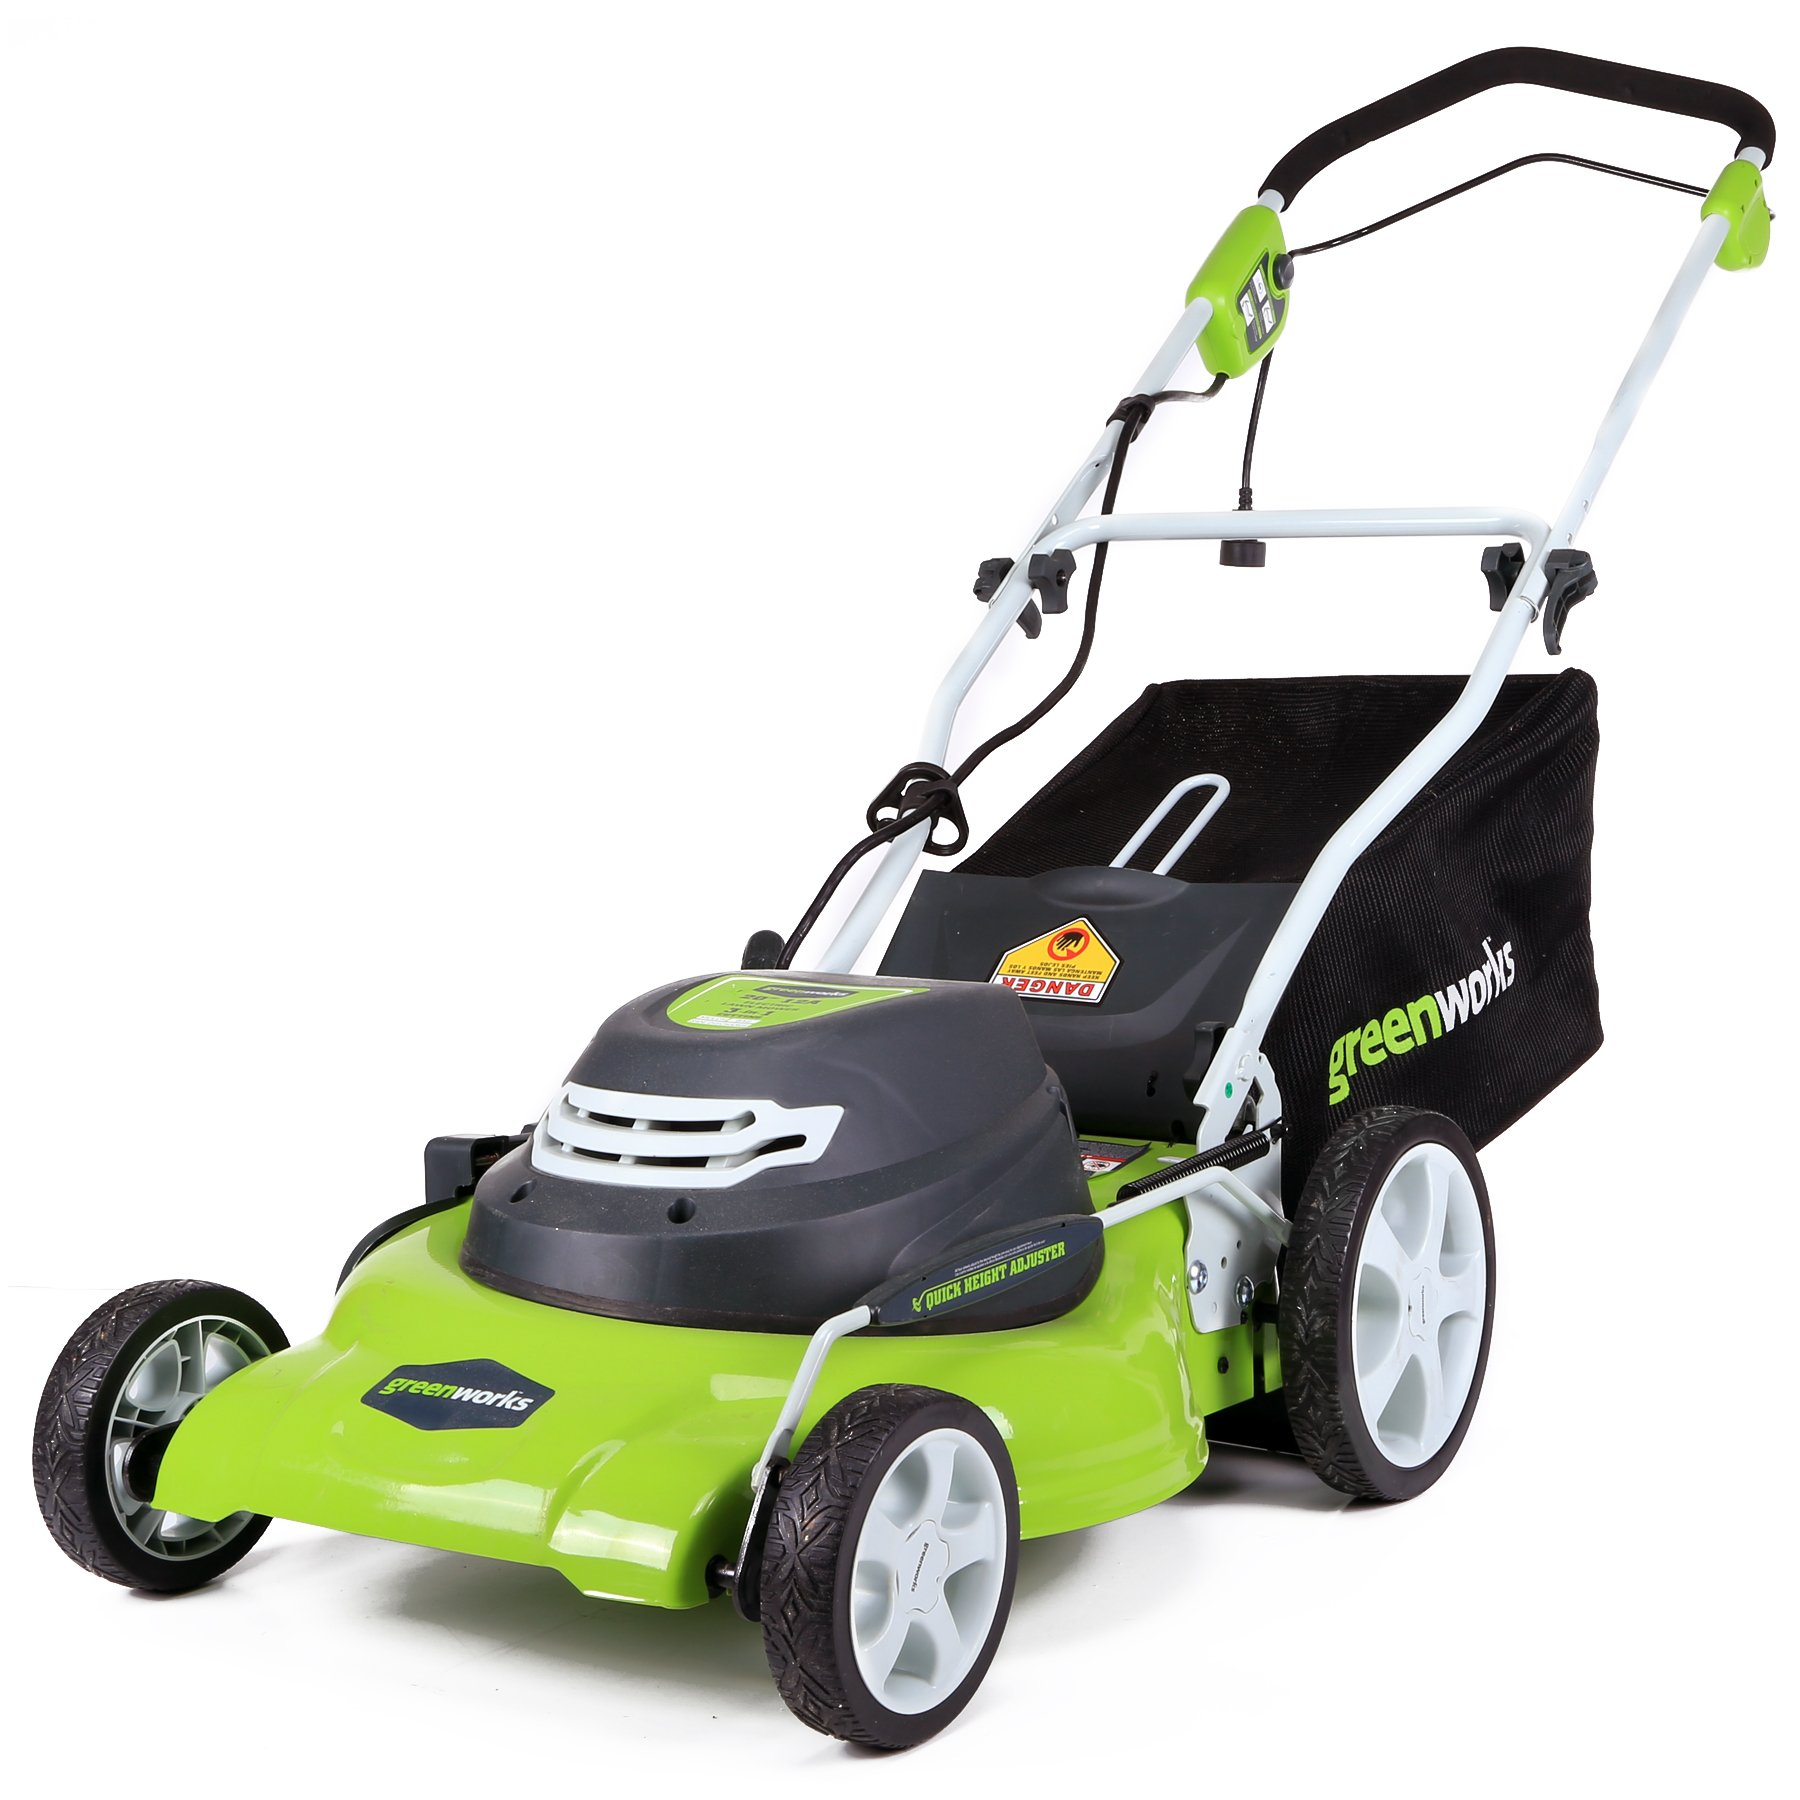 GreenWorks 20-Inch 12 Amp Corded Electric Lawn Mower 25022, 20 inch by Greenworks